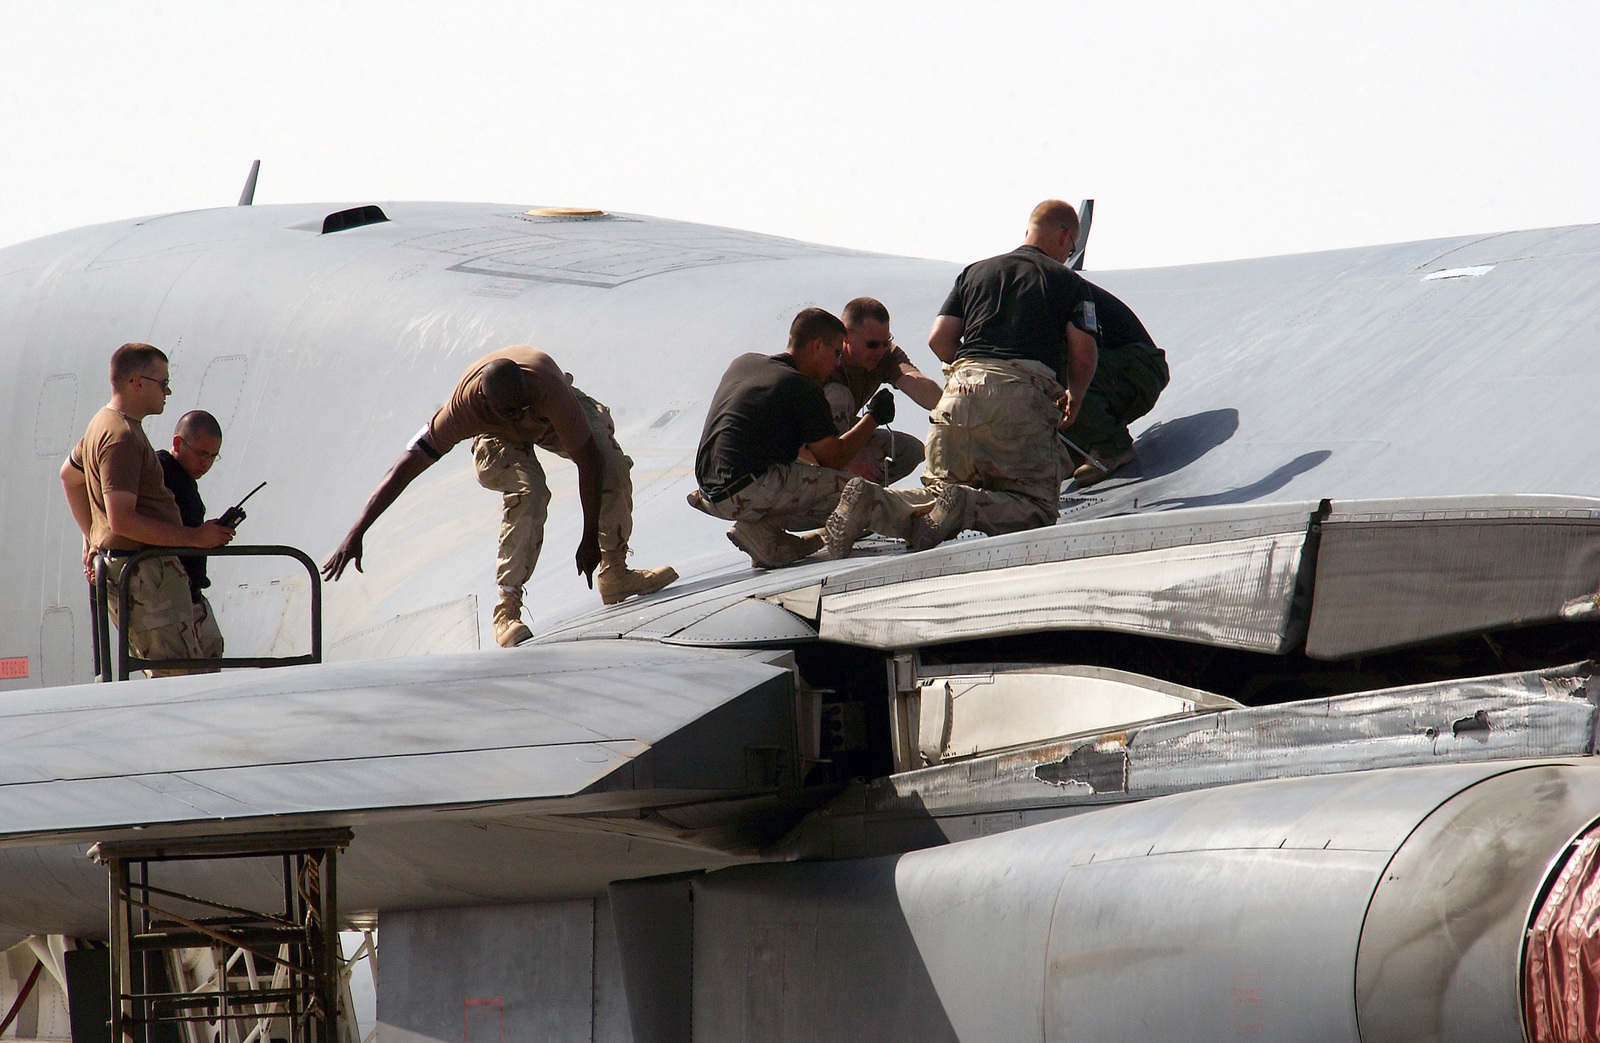 US Air Force (USAF) Airmen assigned to the 28th Expeditionary Aircraft Maintenance Squadron (EAMS), perform maintenance on a USAF B-1B Lancer aircraft at an undisclosed forward deployed location during Operation ENDURING FREEDOM